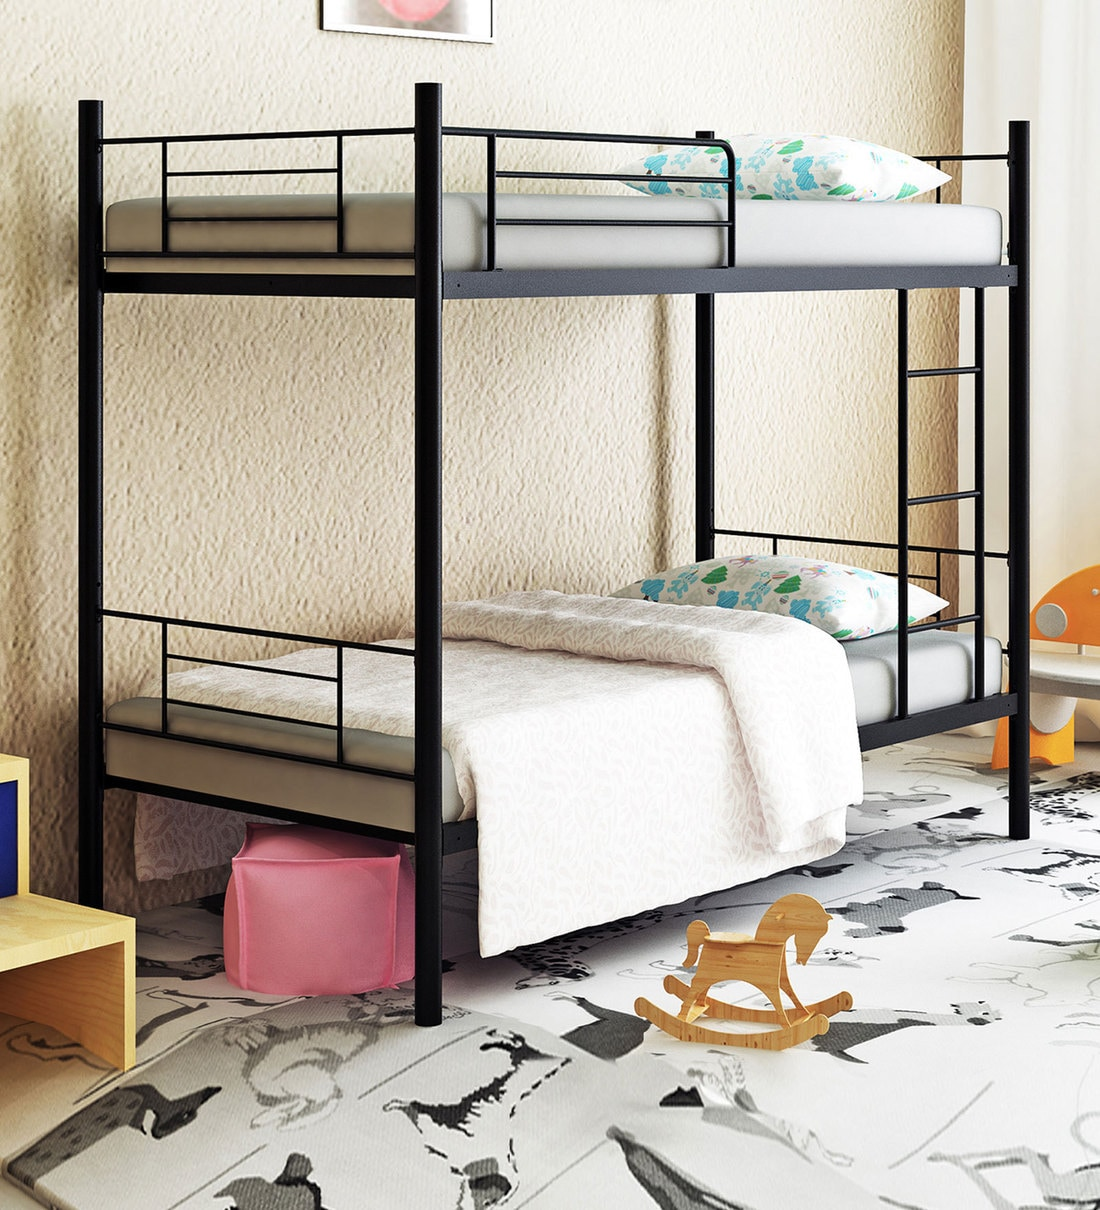 Picture of: Buy Stooreys Modern Bunk Bed By Camabeds Online Standard Bunk Beds Bunk Beds Kids Furniture Pepperfry Product